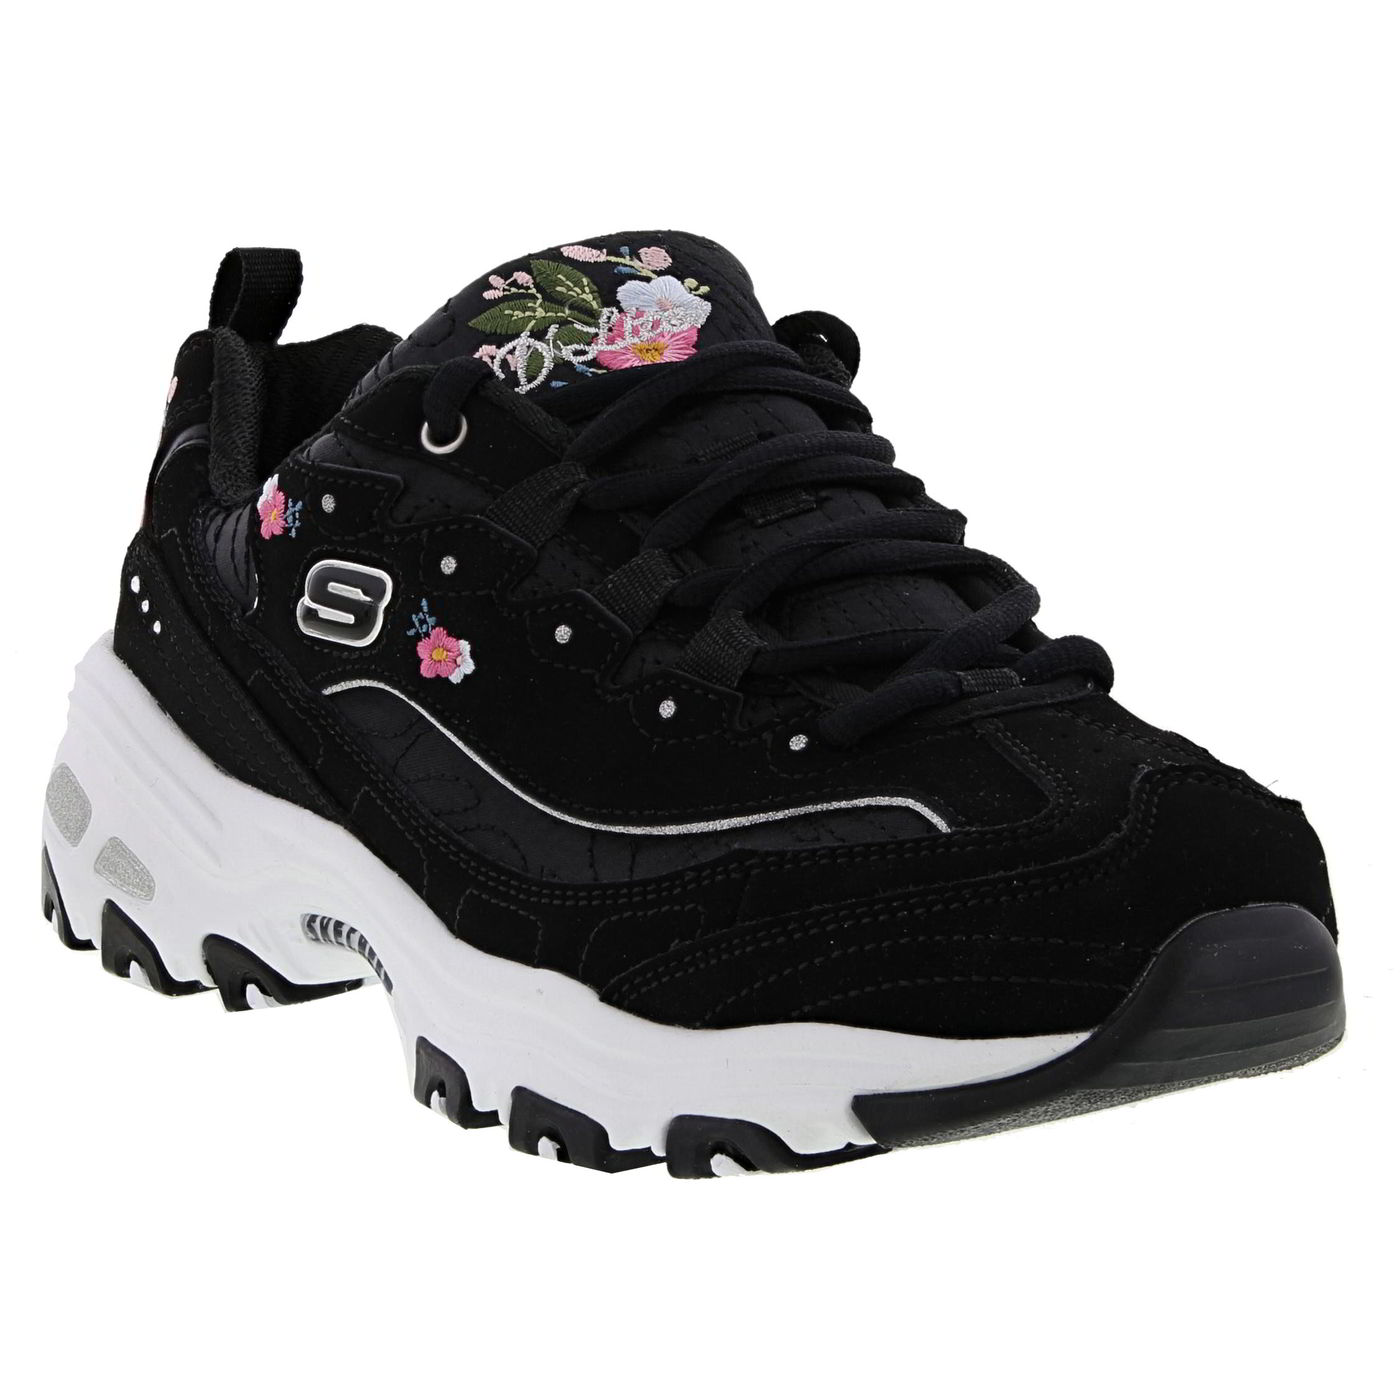 Skechers D Lites Me Time Womens Ladies Chunky Platform Trainers Shoes Sizes 4-8